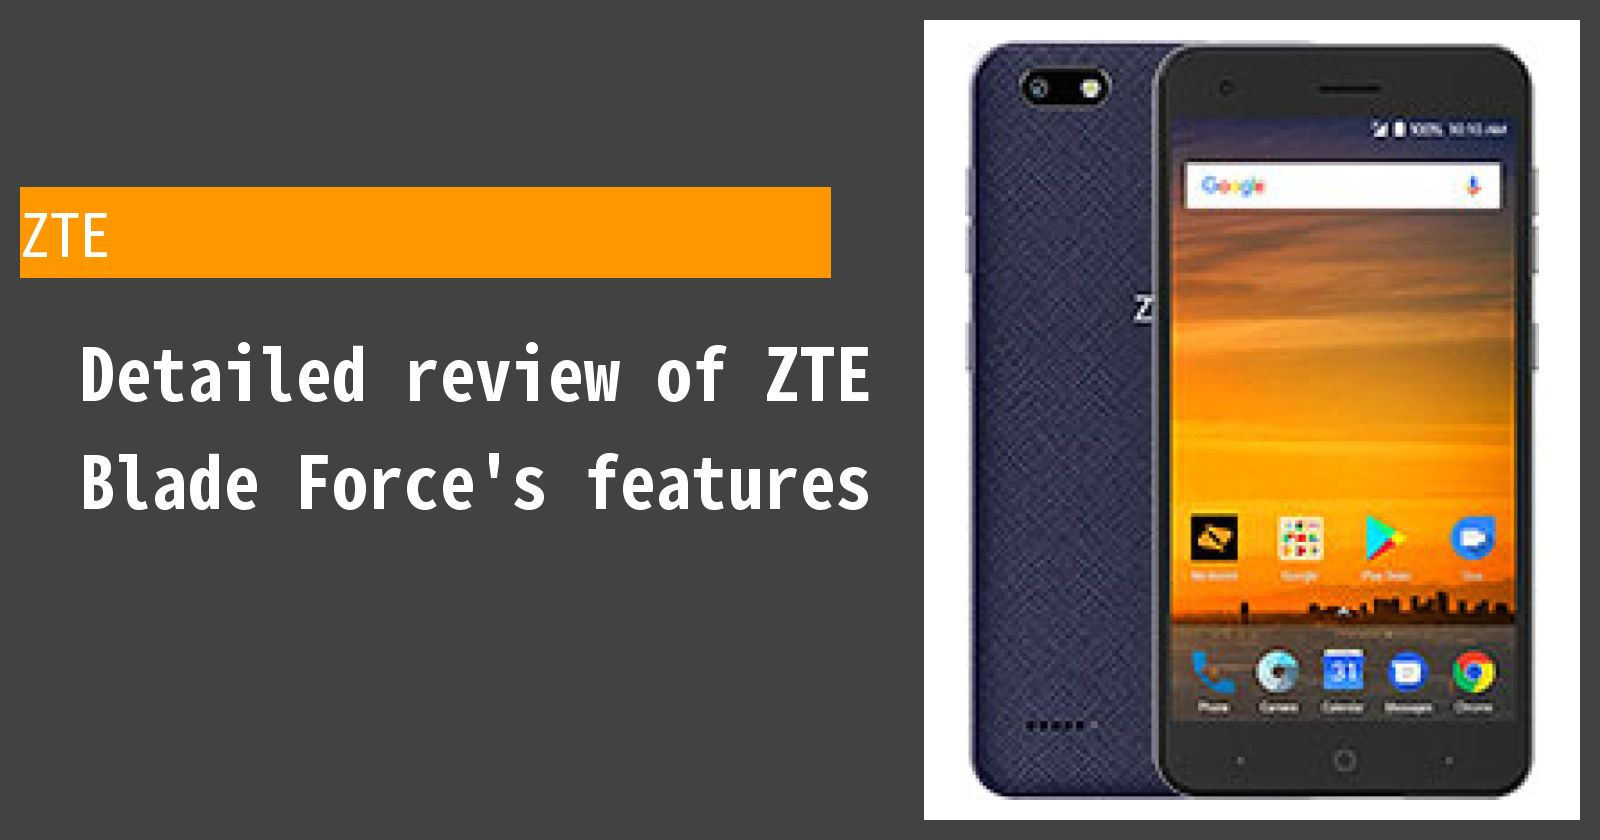 Detailed review of ZTE Blade Force's features